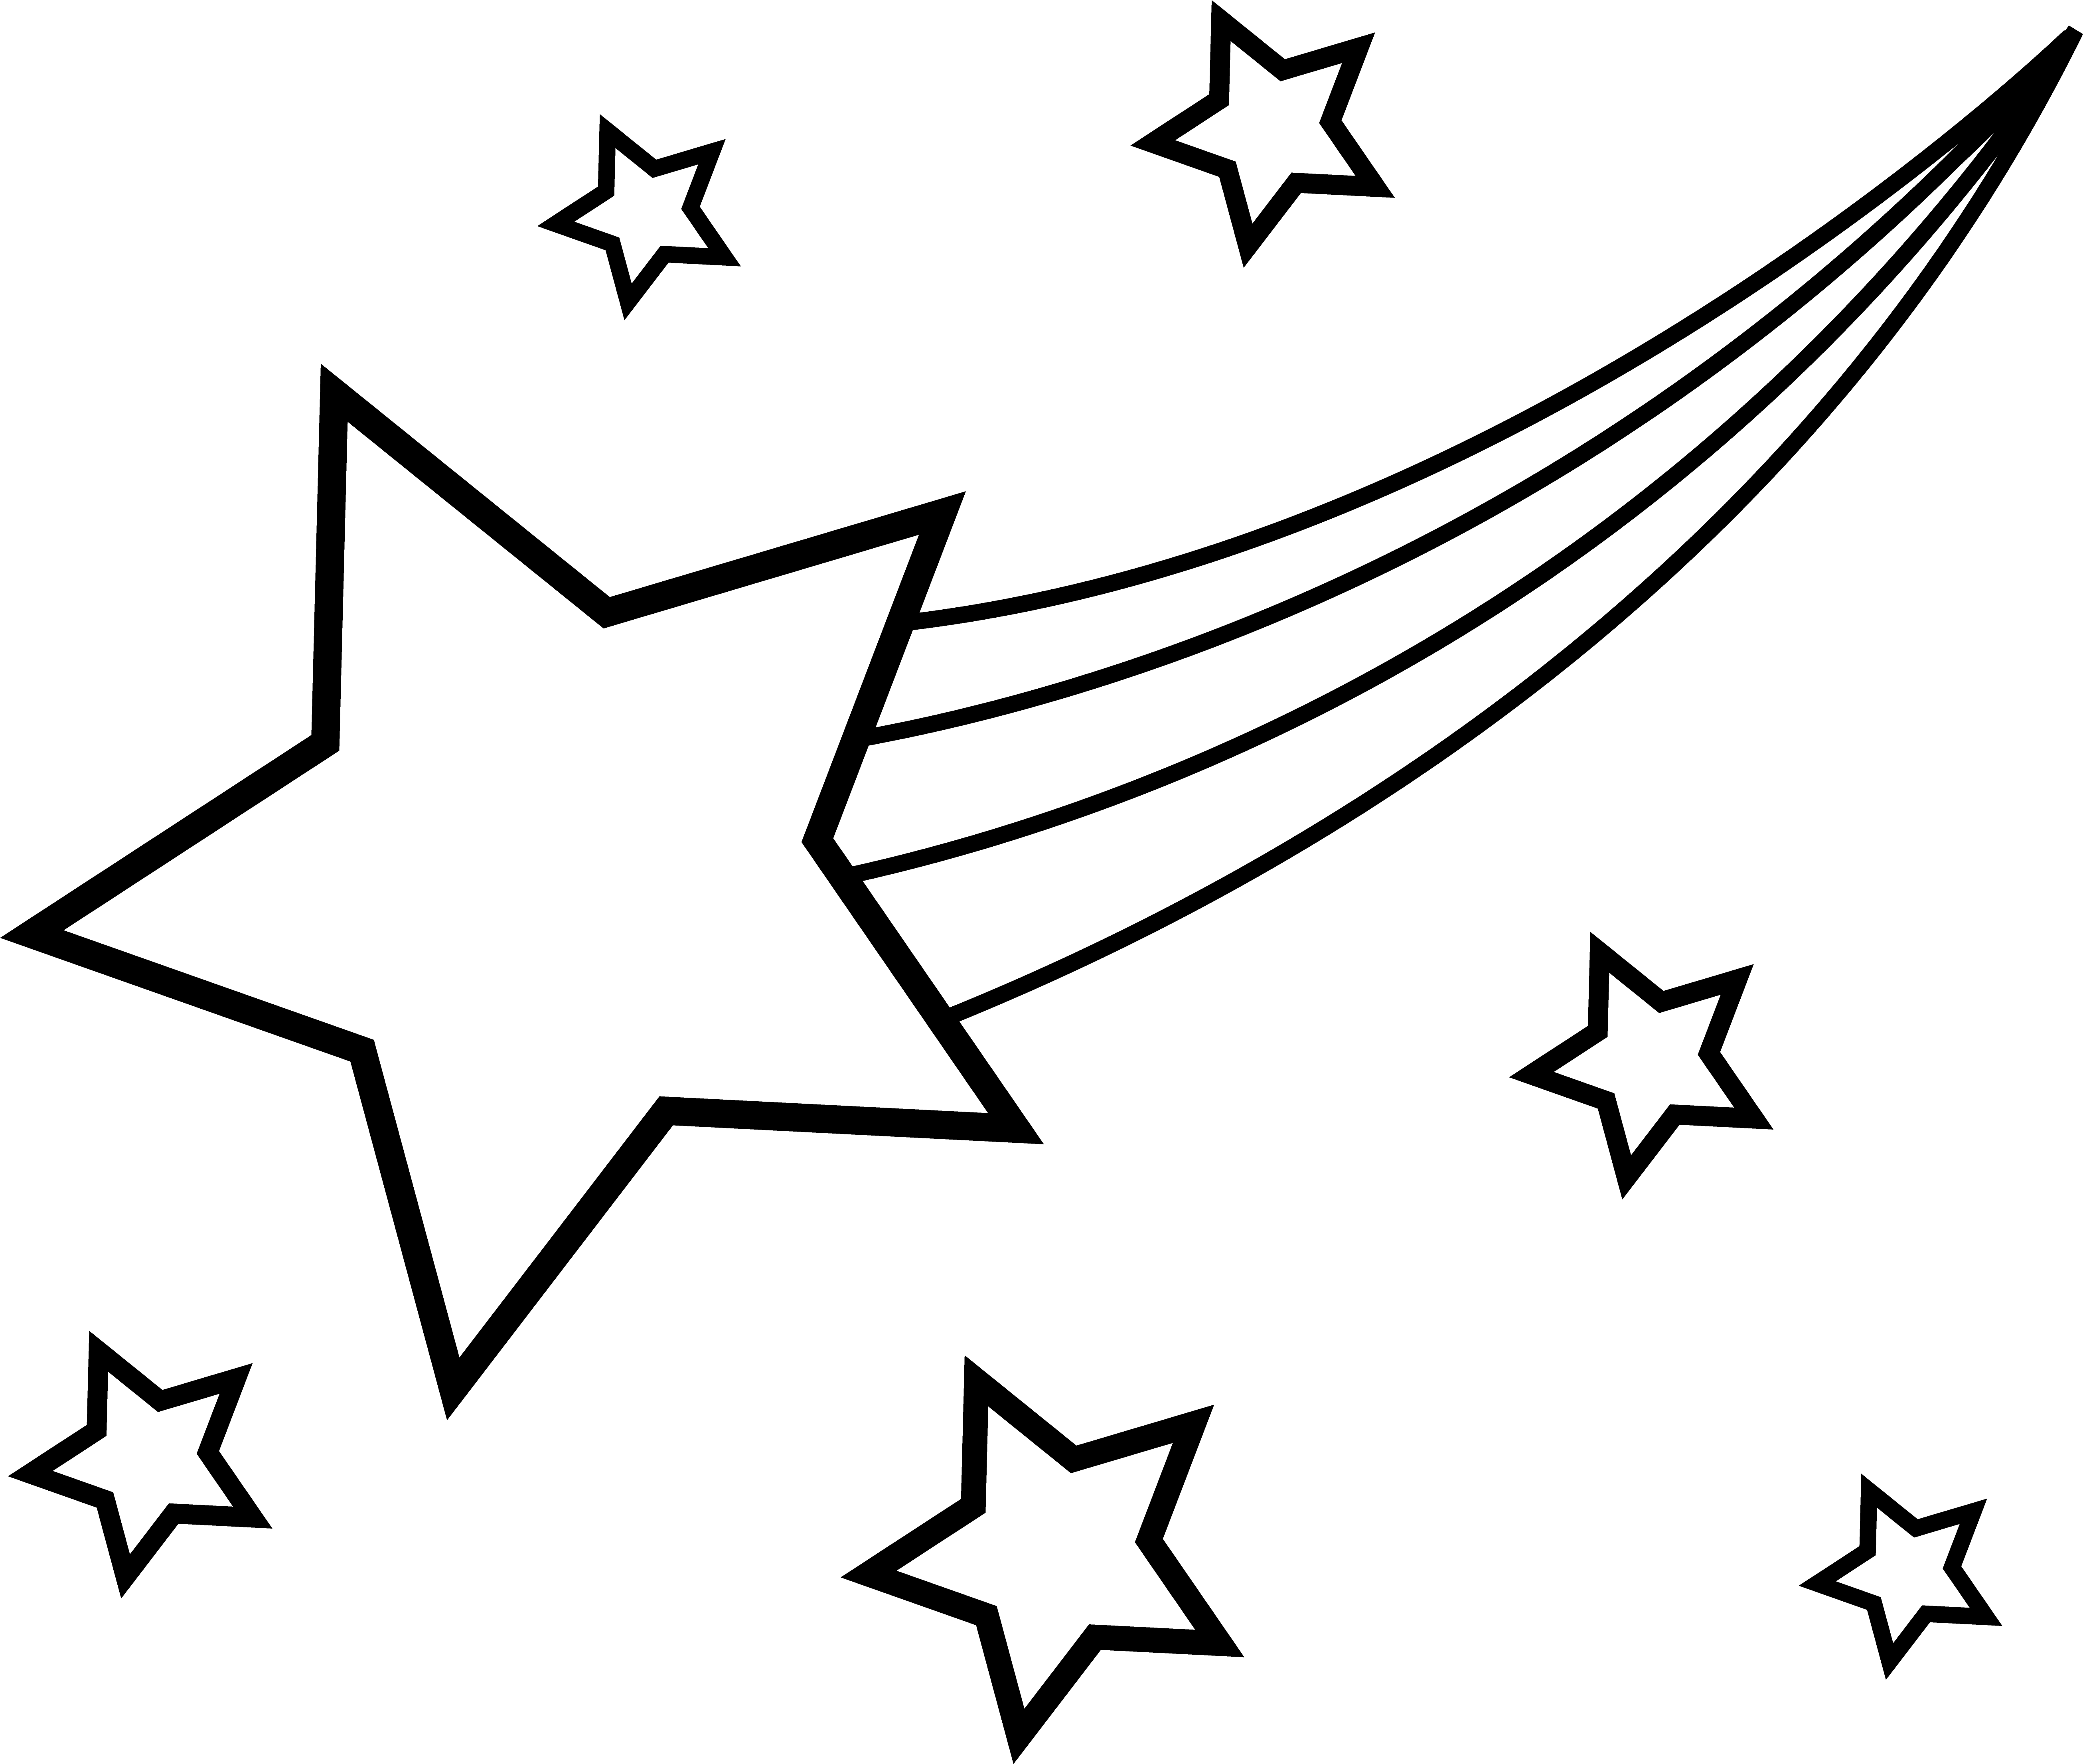 Star clipart white image royalty free library Stars Coloring Pages - www.bpsc-conf.org image royalty free library